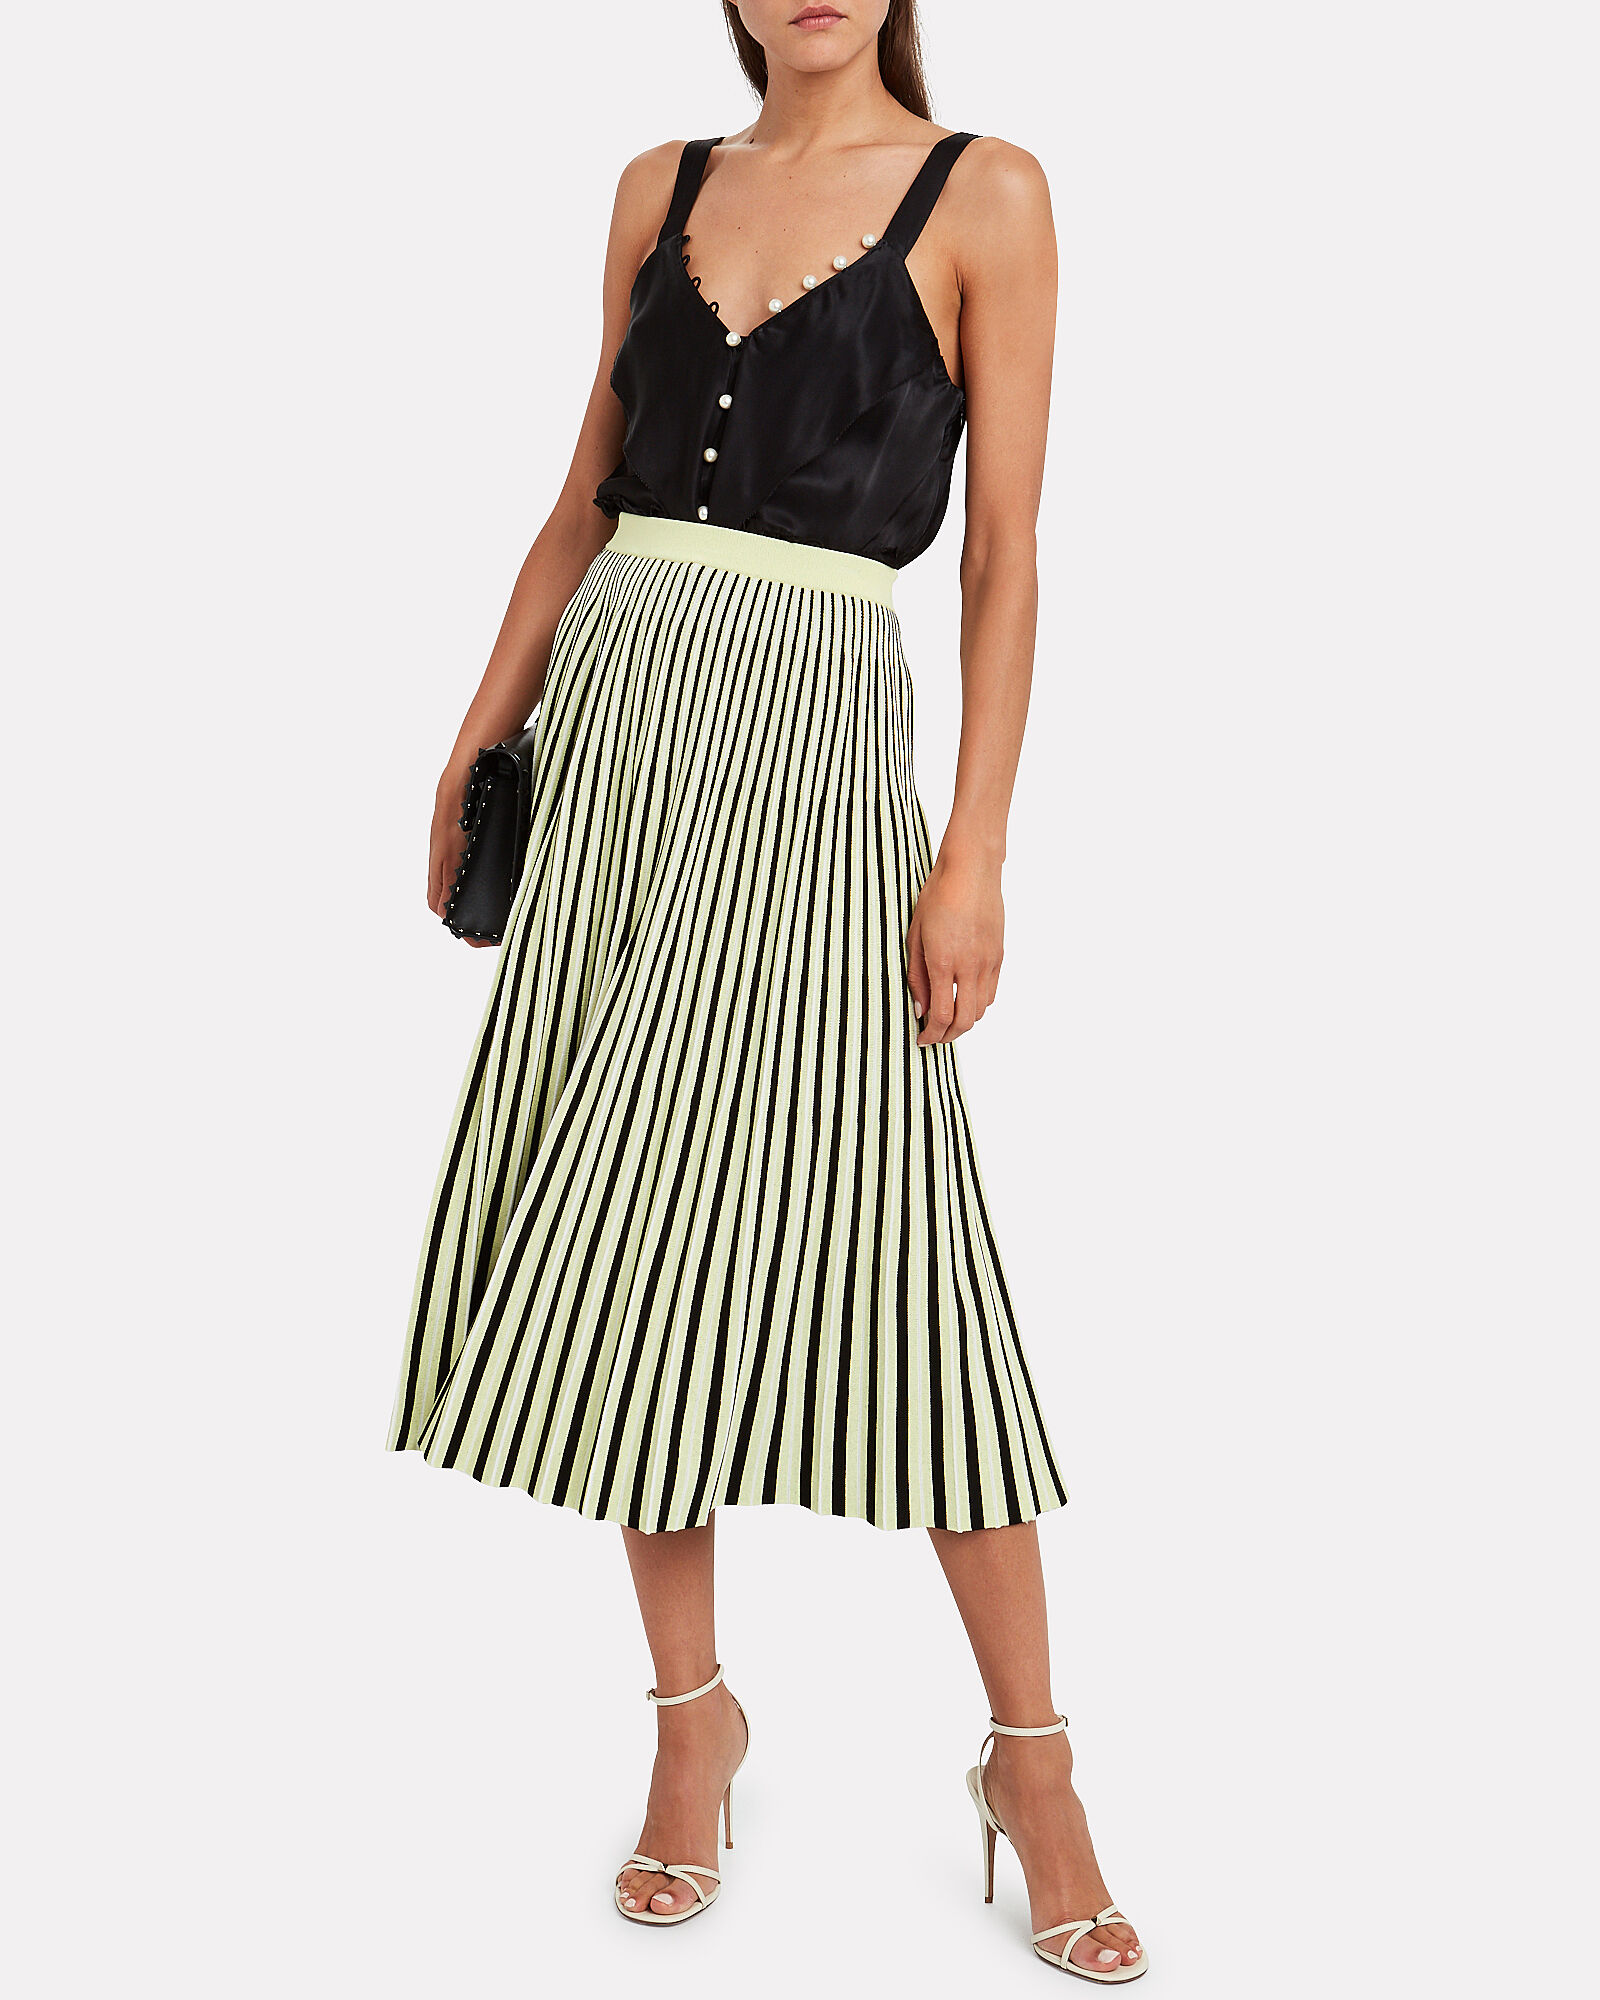 Jacquard Striped Pleated Midi Skirt, NEON YELLOW/STRIPE, hi-res